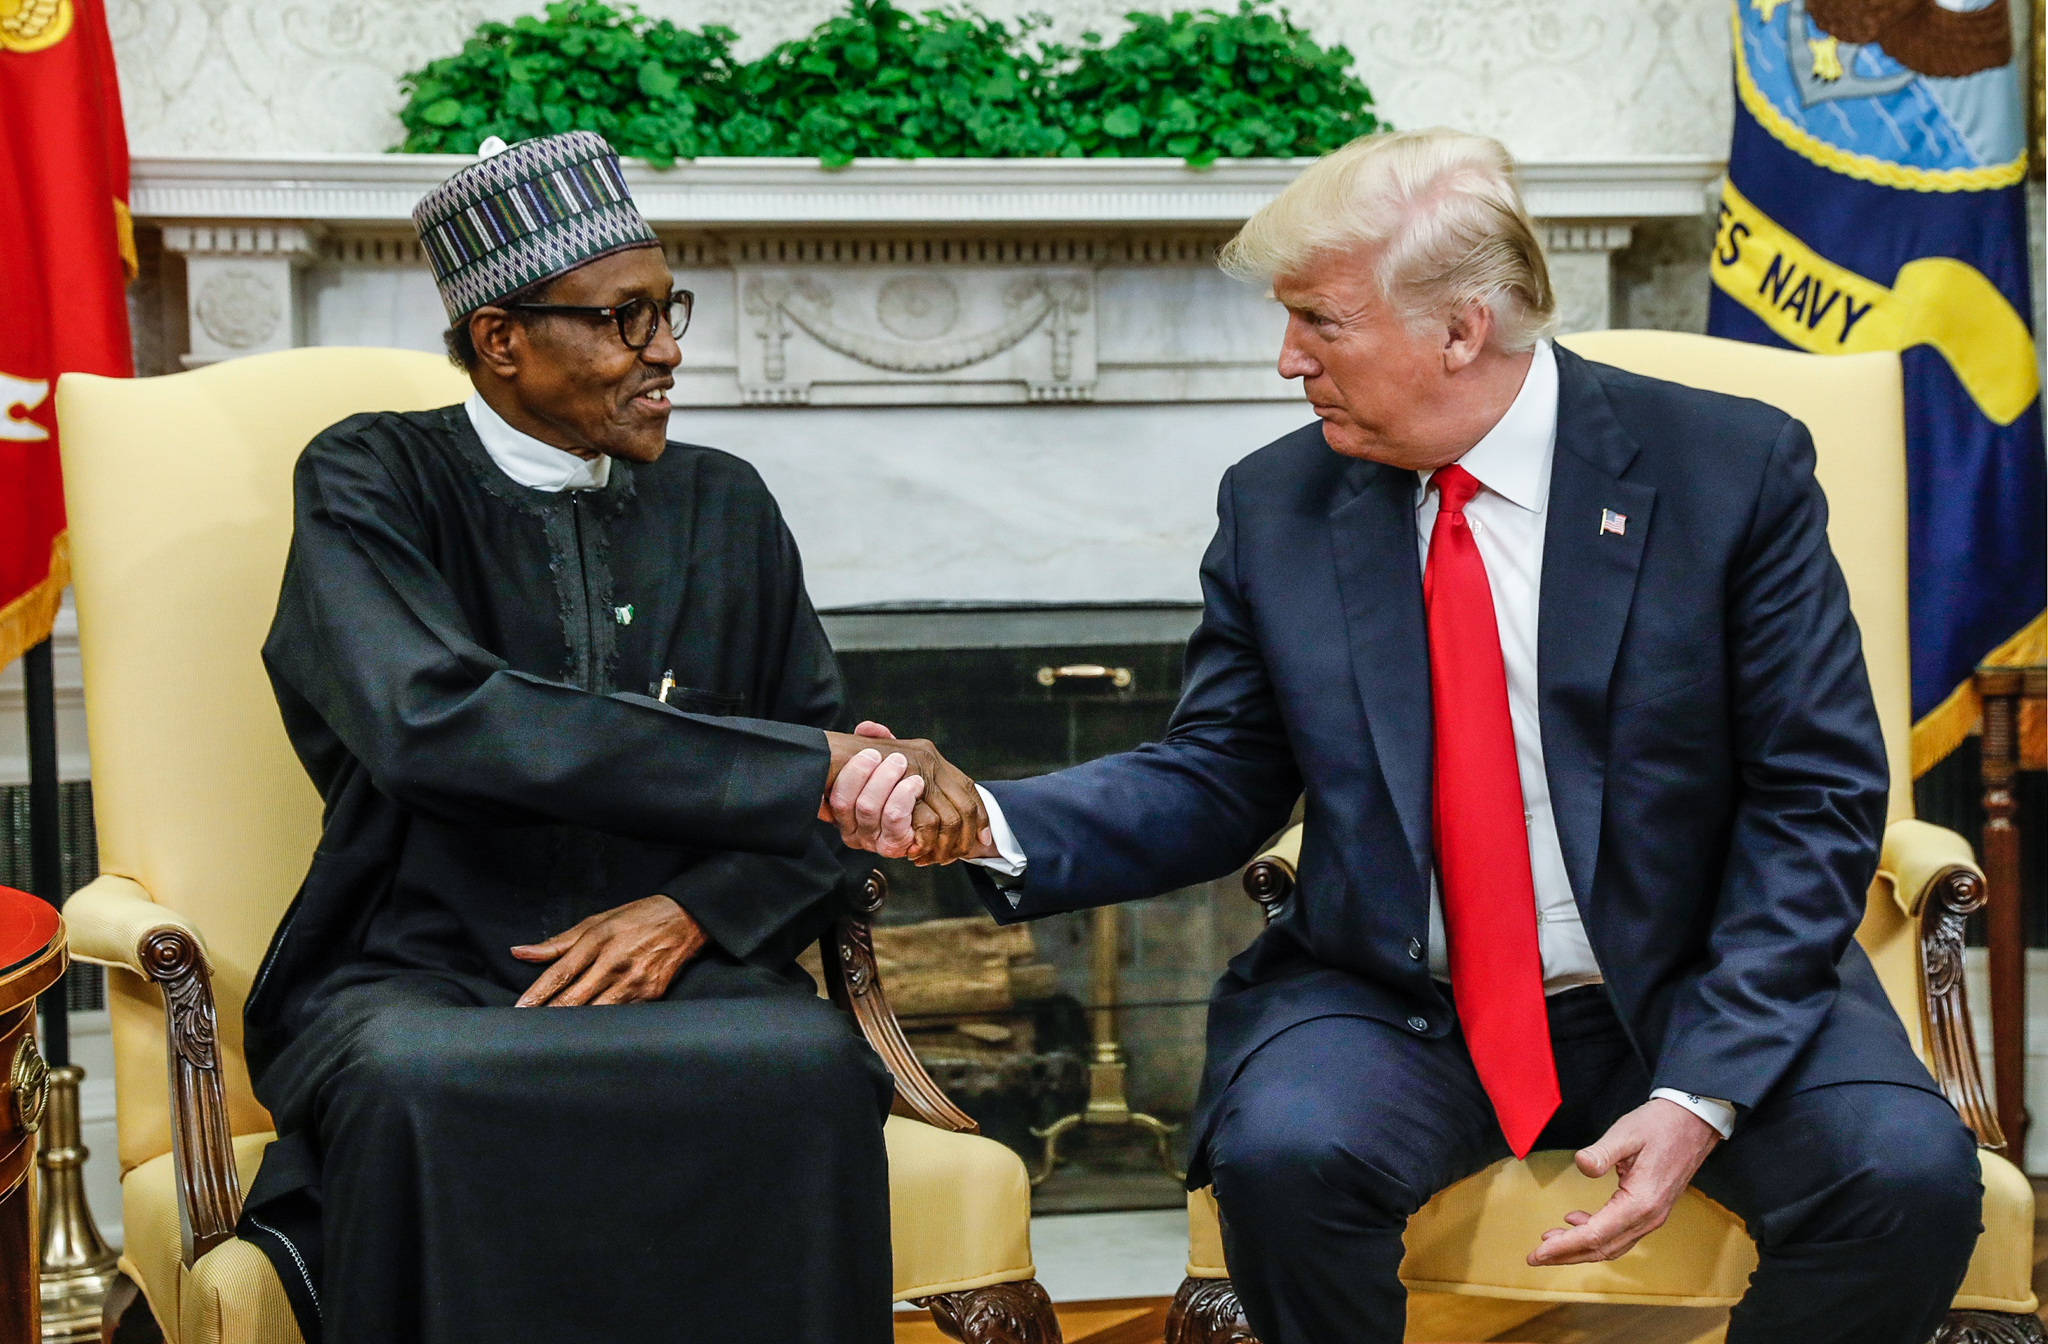 U.S. President Donald Trump meets with Nigeria's President Muhammadu Buhari in the Oval Office of the White House in Washington, U.S., April 30, 2018. REUTERS/Kevin Lamarque - HP1EE4U19EAHX